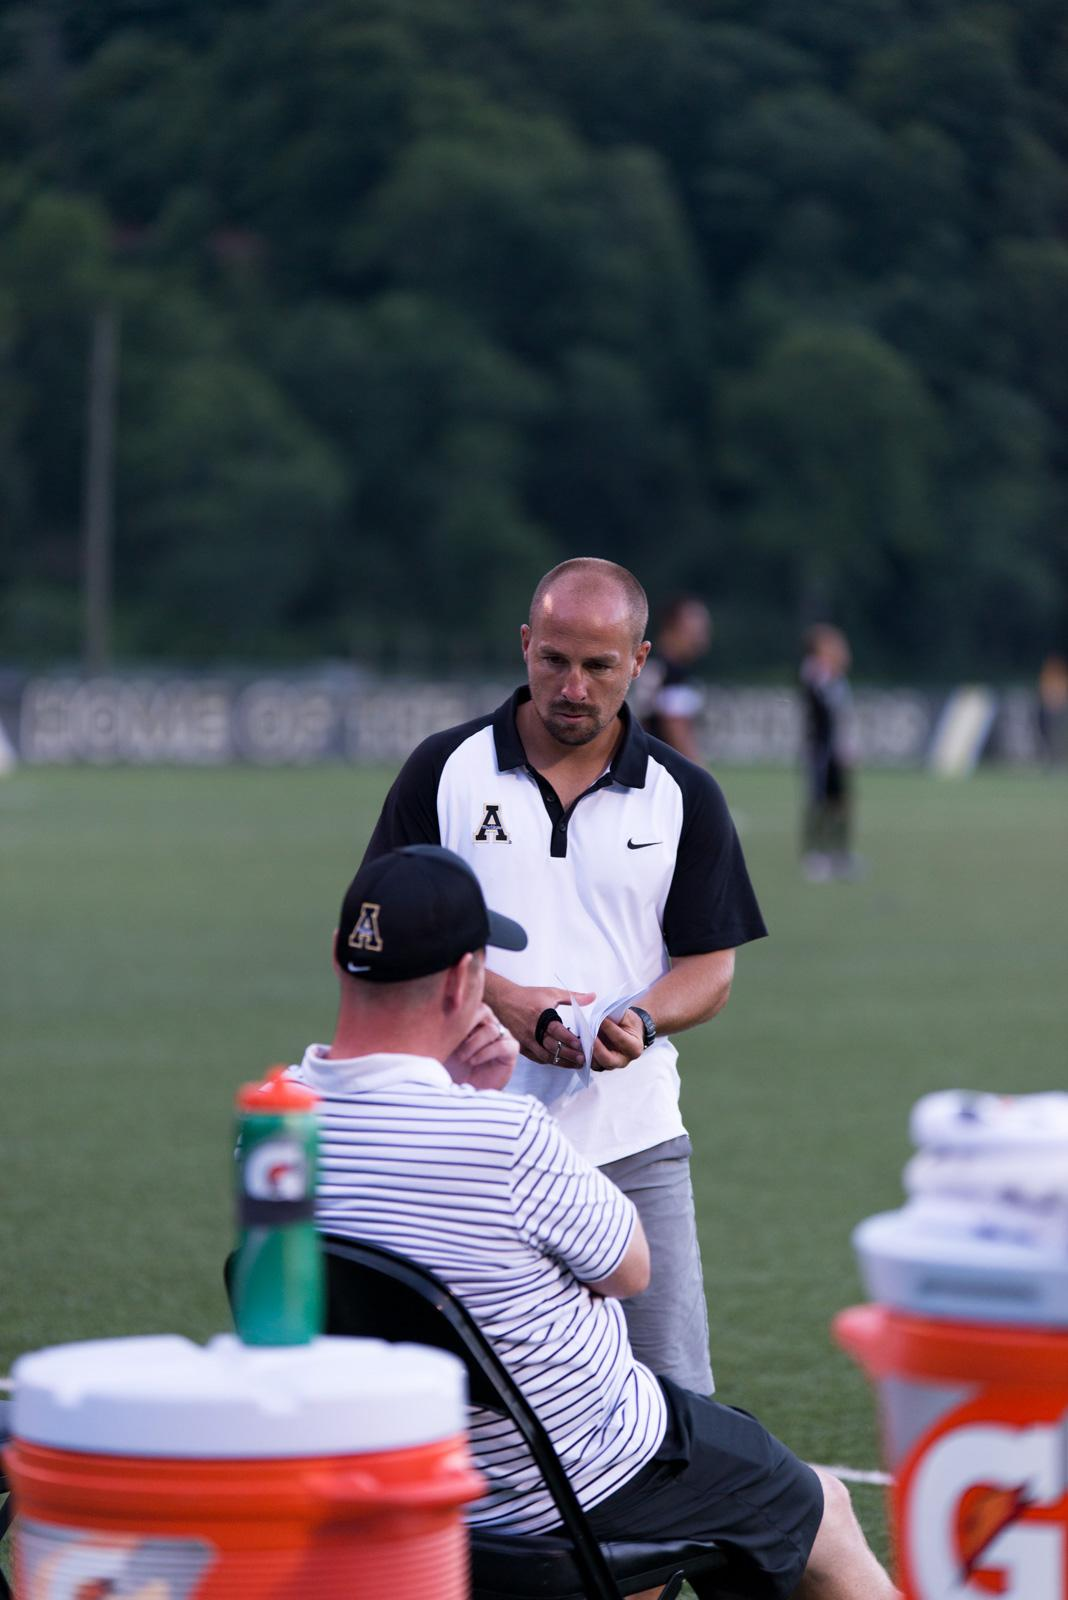 Assistant Coach Jeff Bilyk and Head Coach Jason OKeefe strategizing during the exhibition on Friday at Ted Mackorell Soccer Complex.